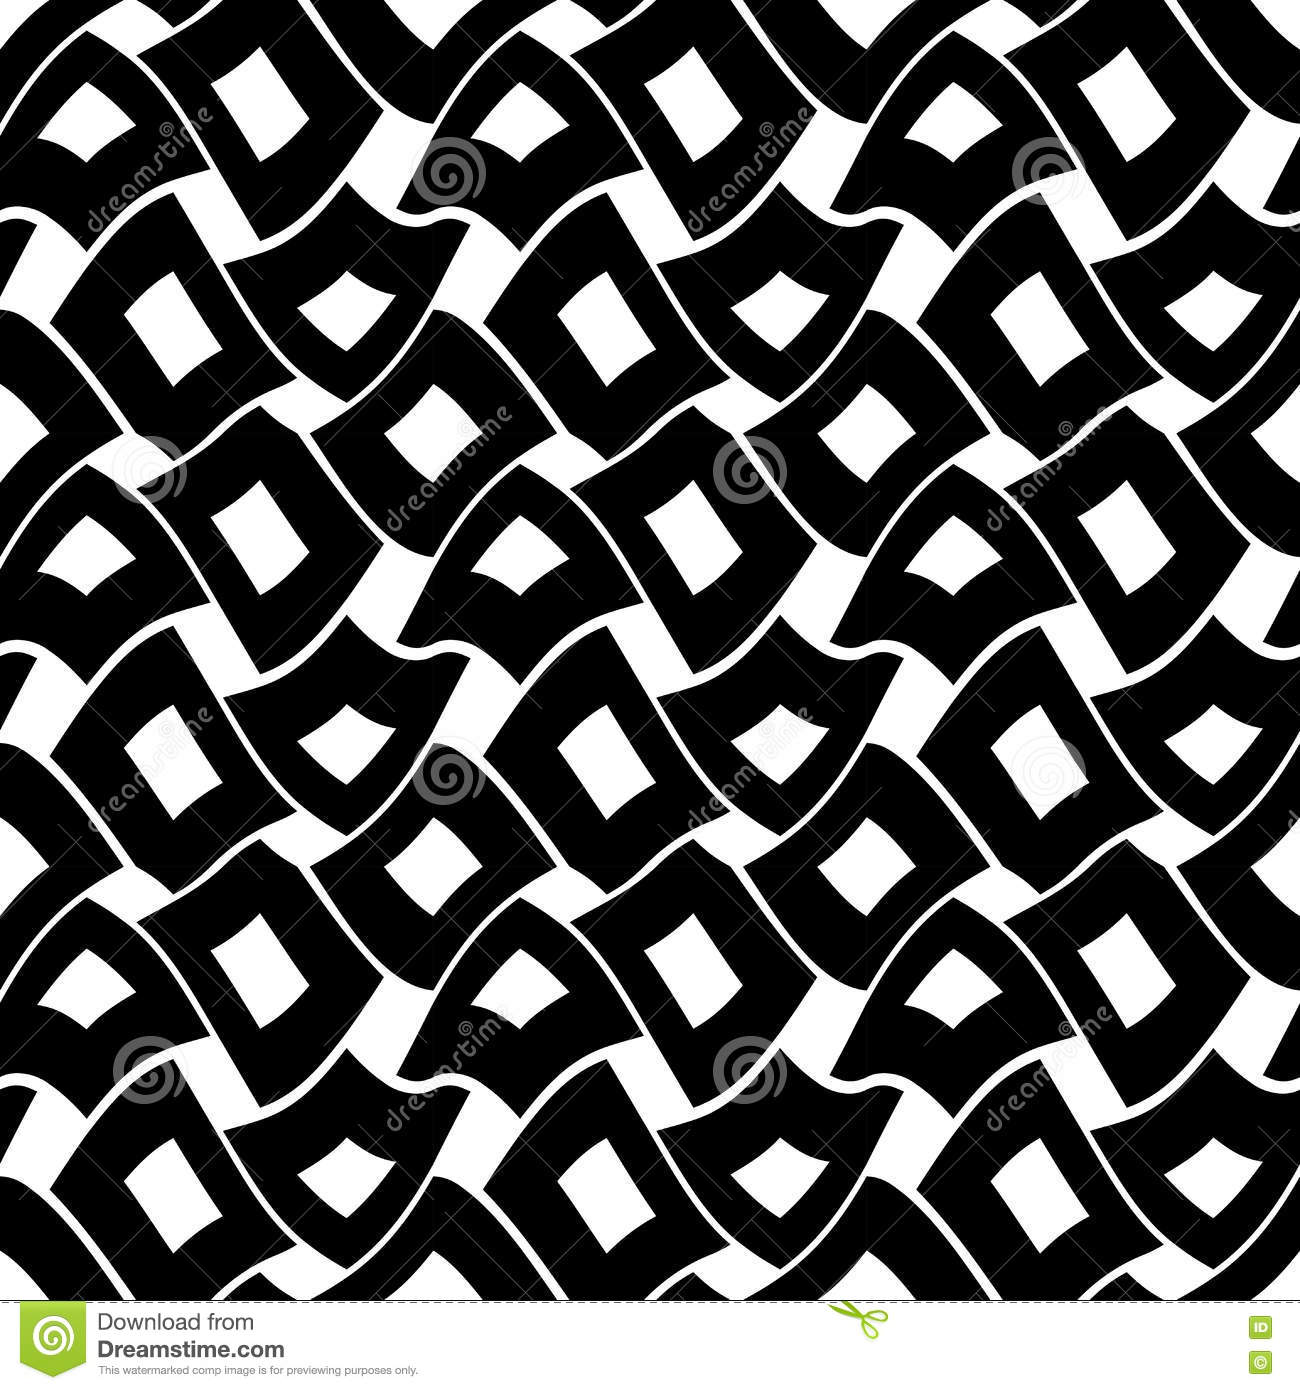 Black bed sheets pattern - Royalty Free Vector